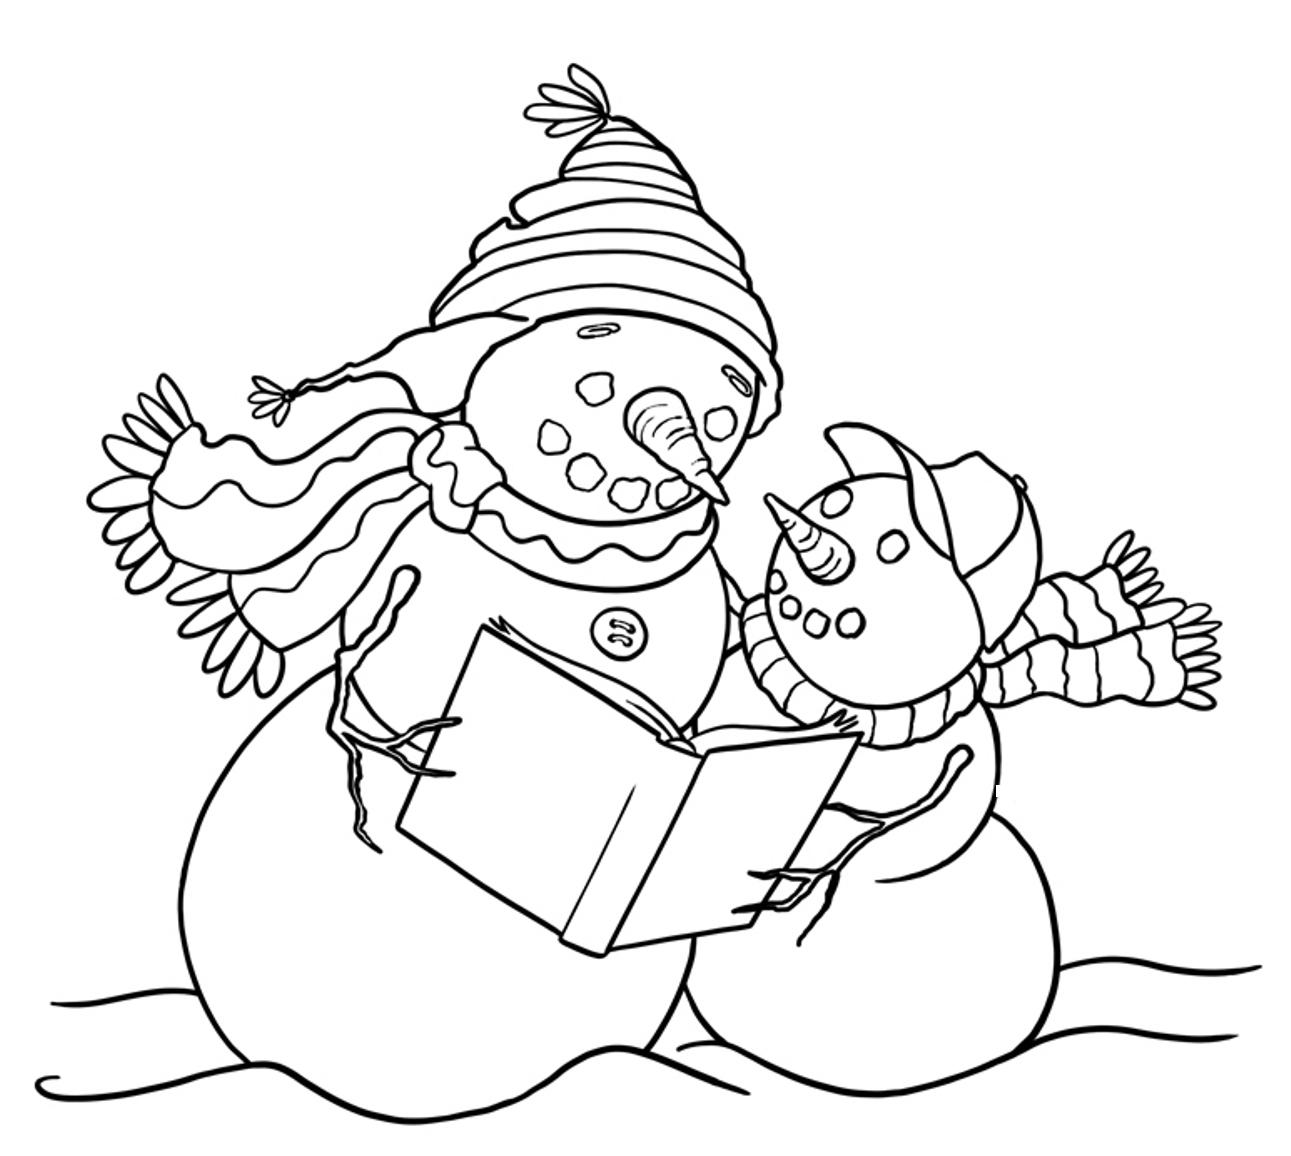 Snowman Family Coloring Pages At Getcolorings